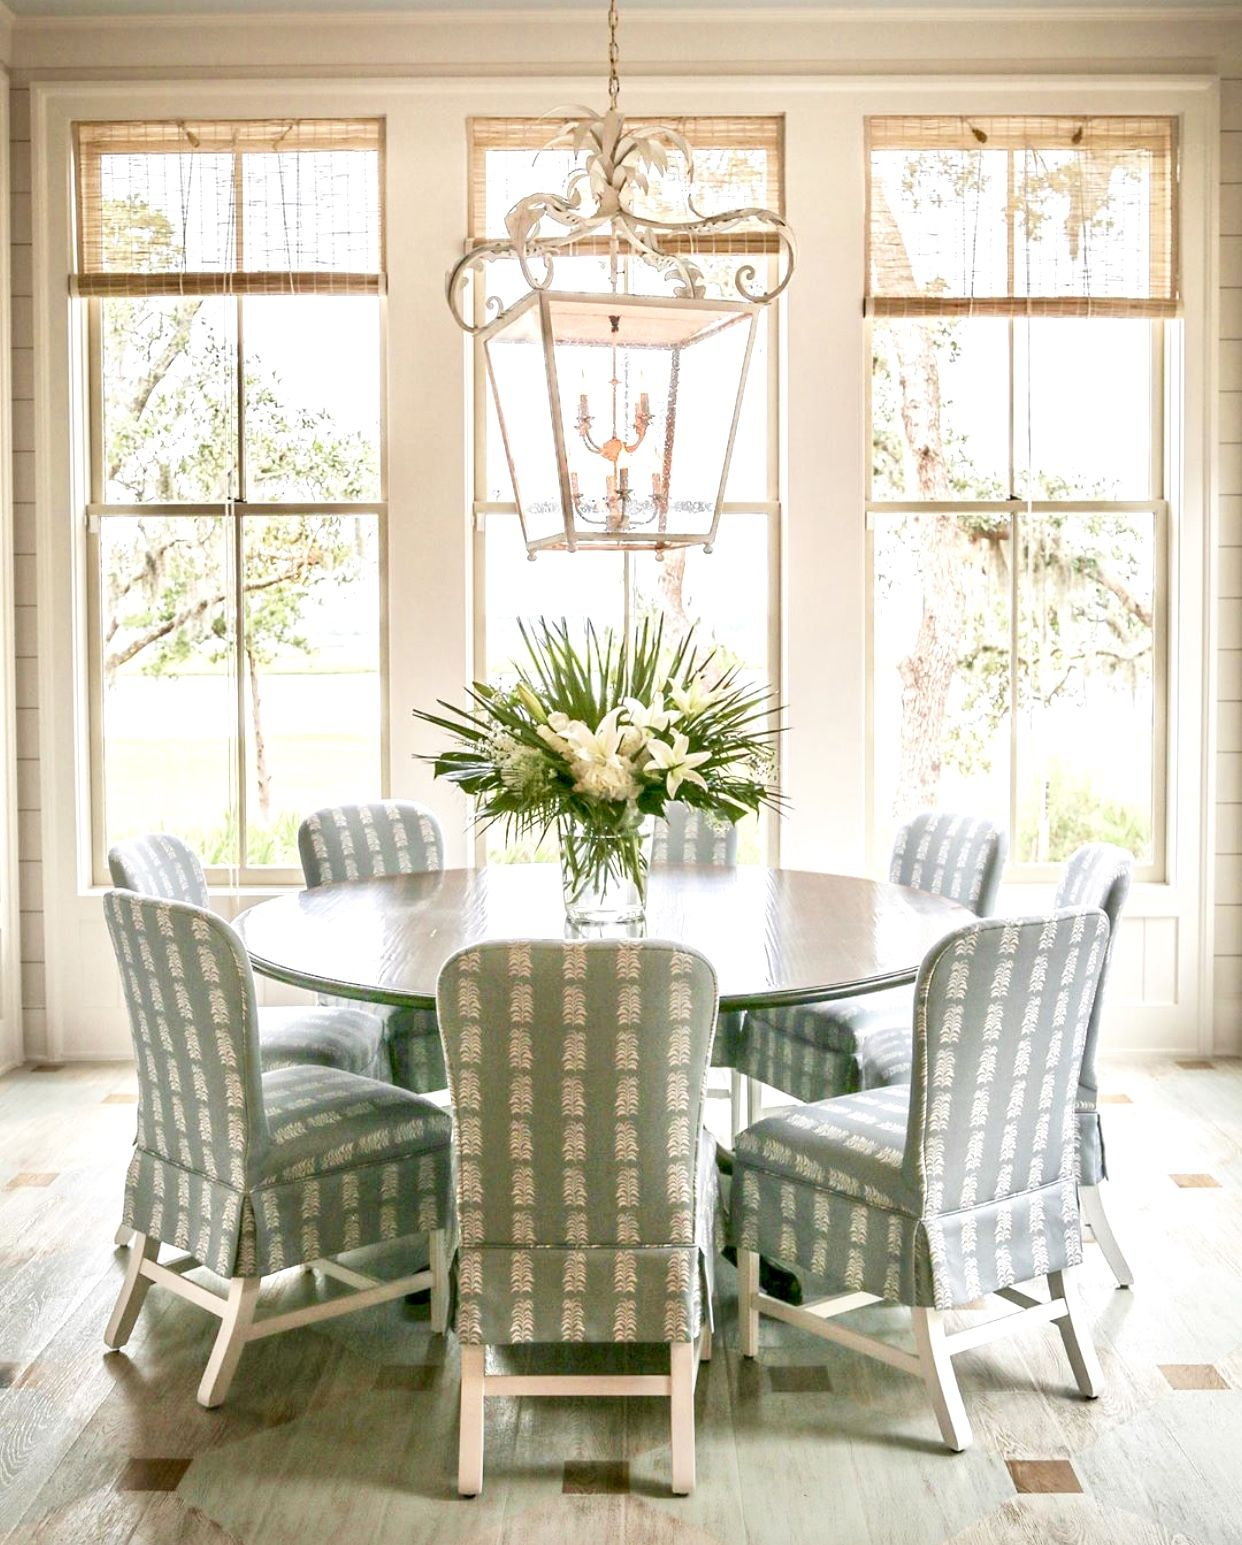 Southern Style Decorating Ideas From Southern Living: SOUTHERN LIVING IDEA HOUSE 2019